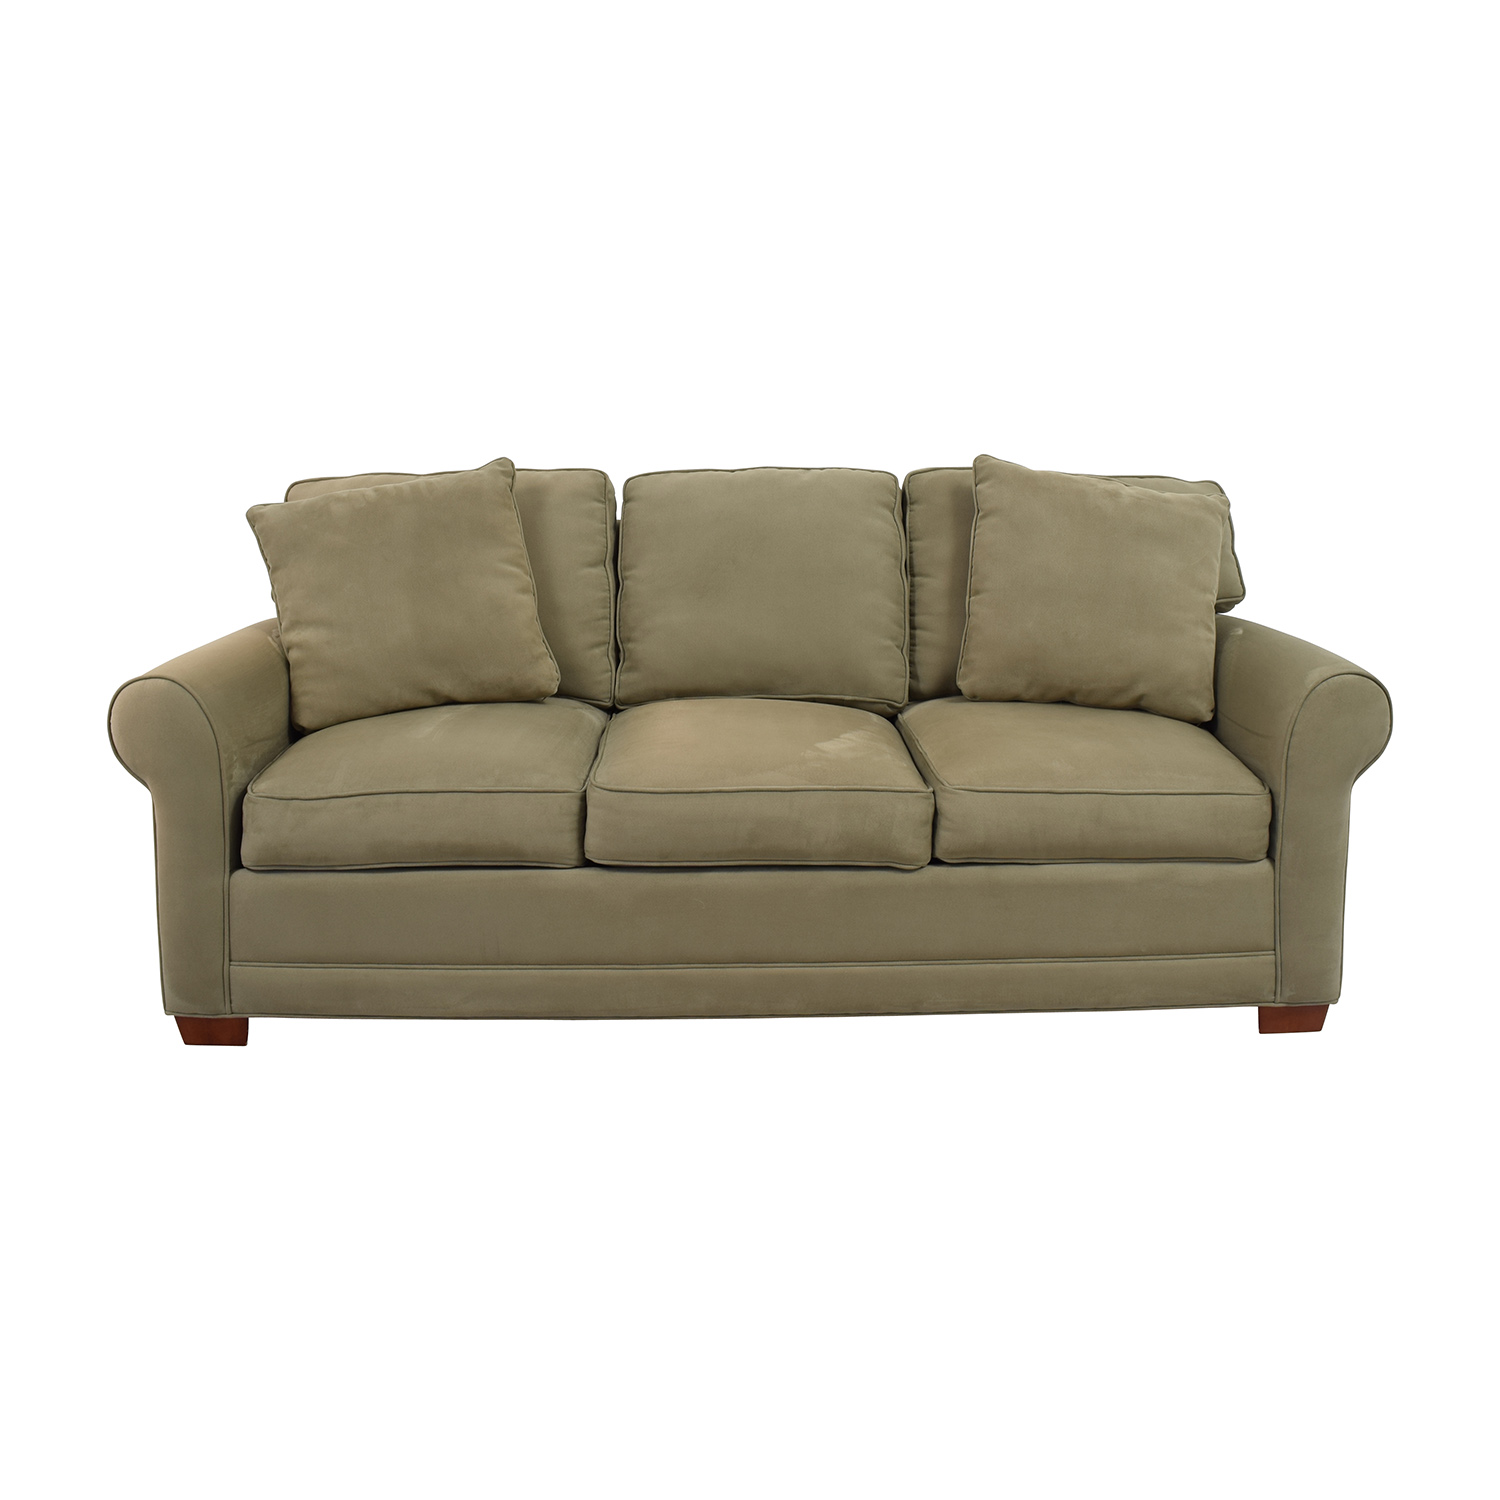 Raymour & Flanigan Beige Three-Cushion Couch sale